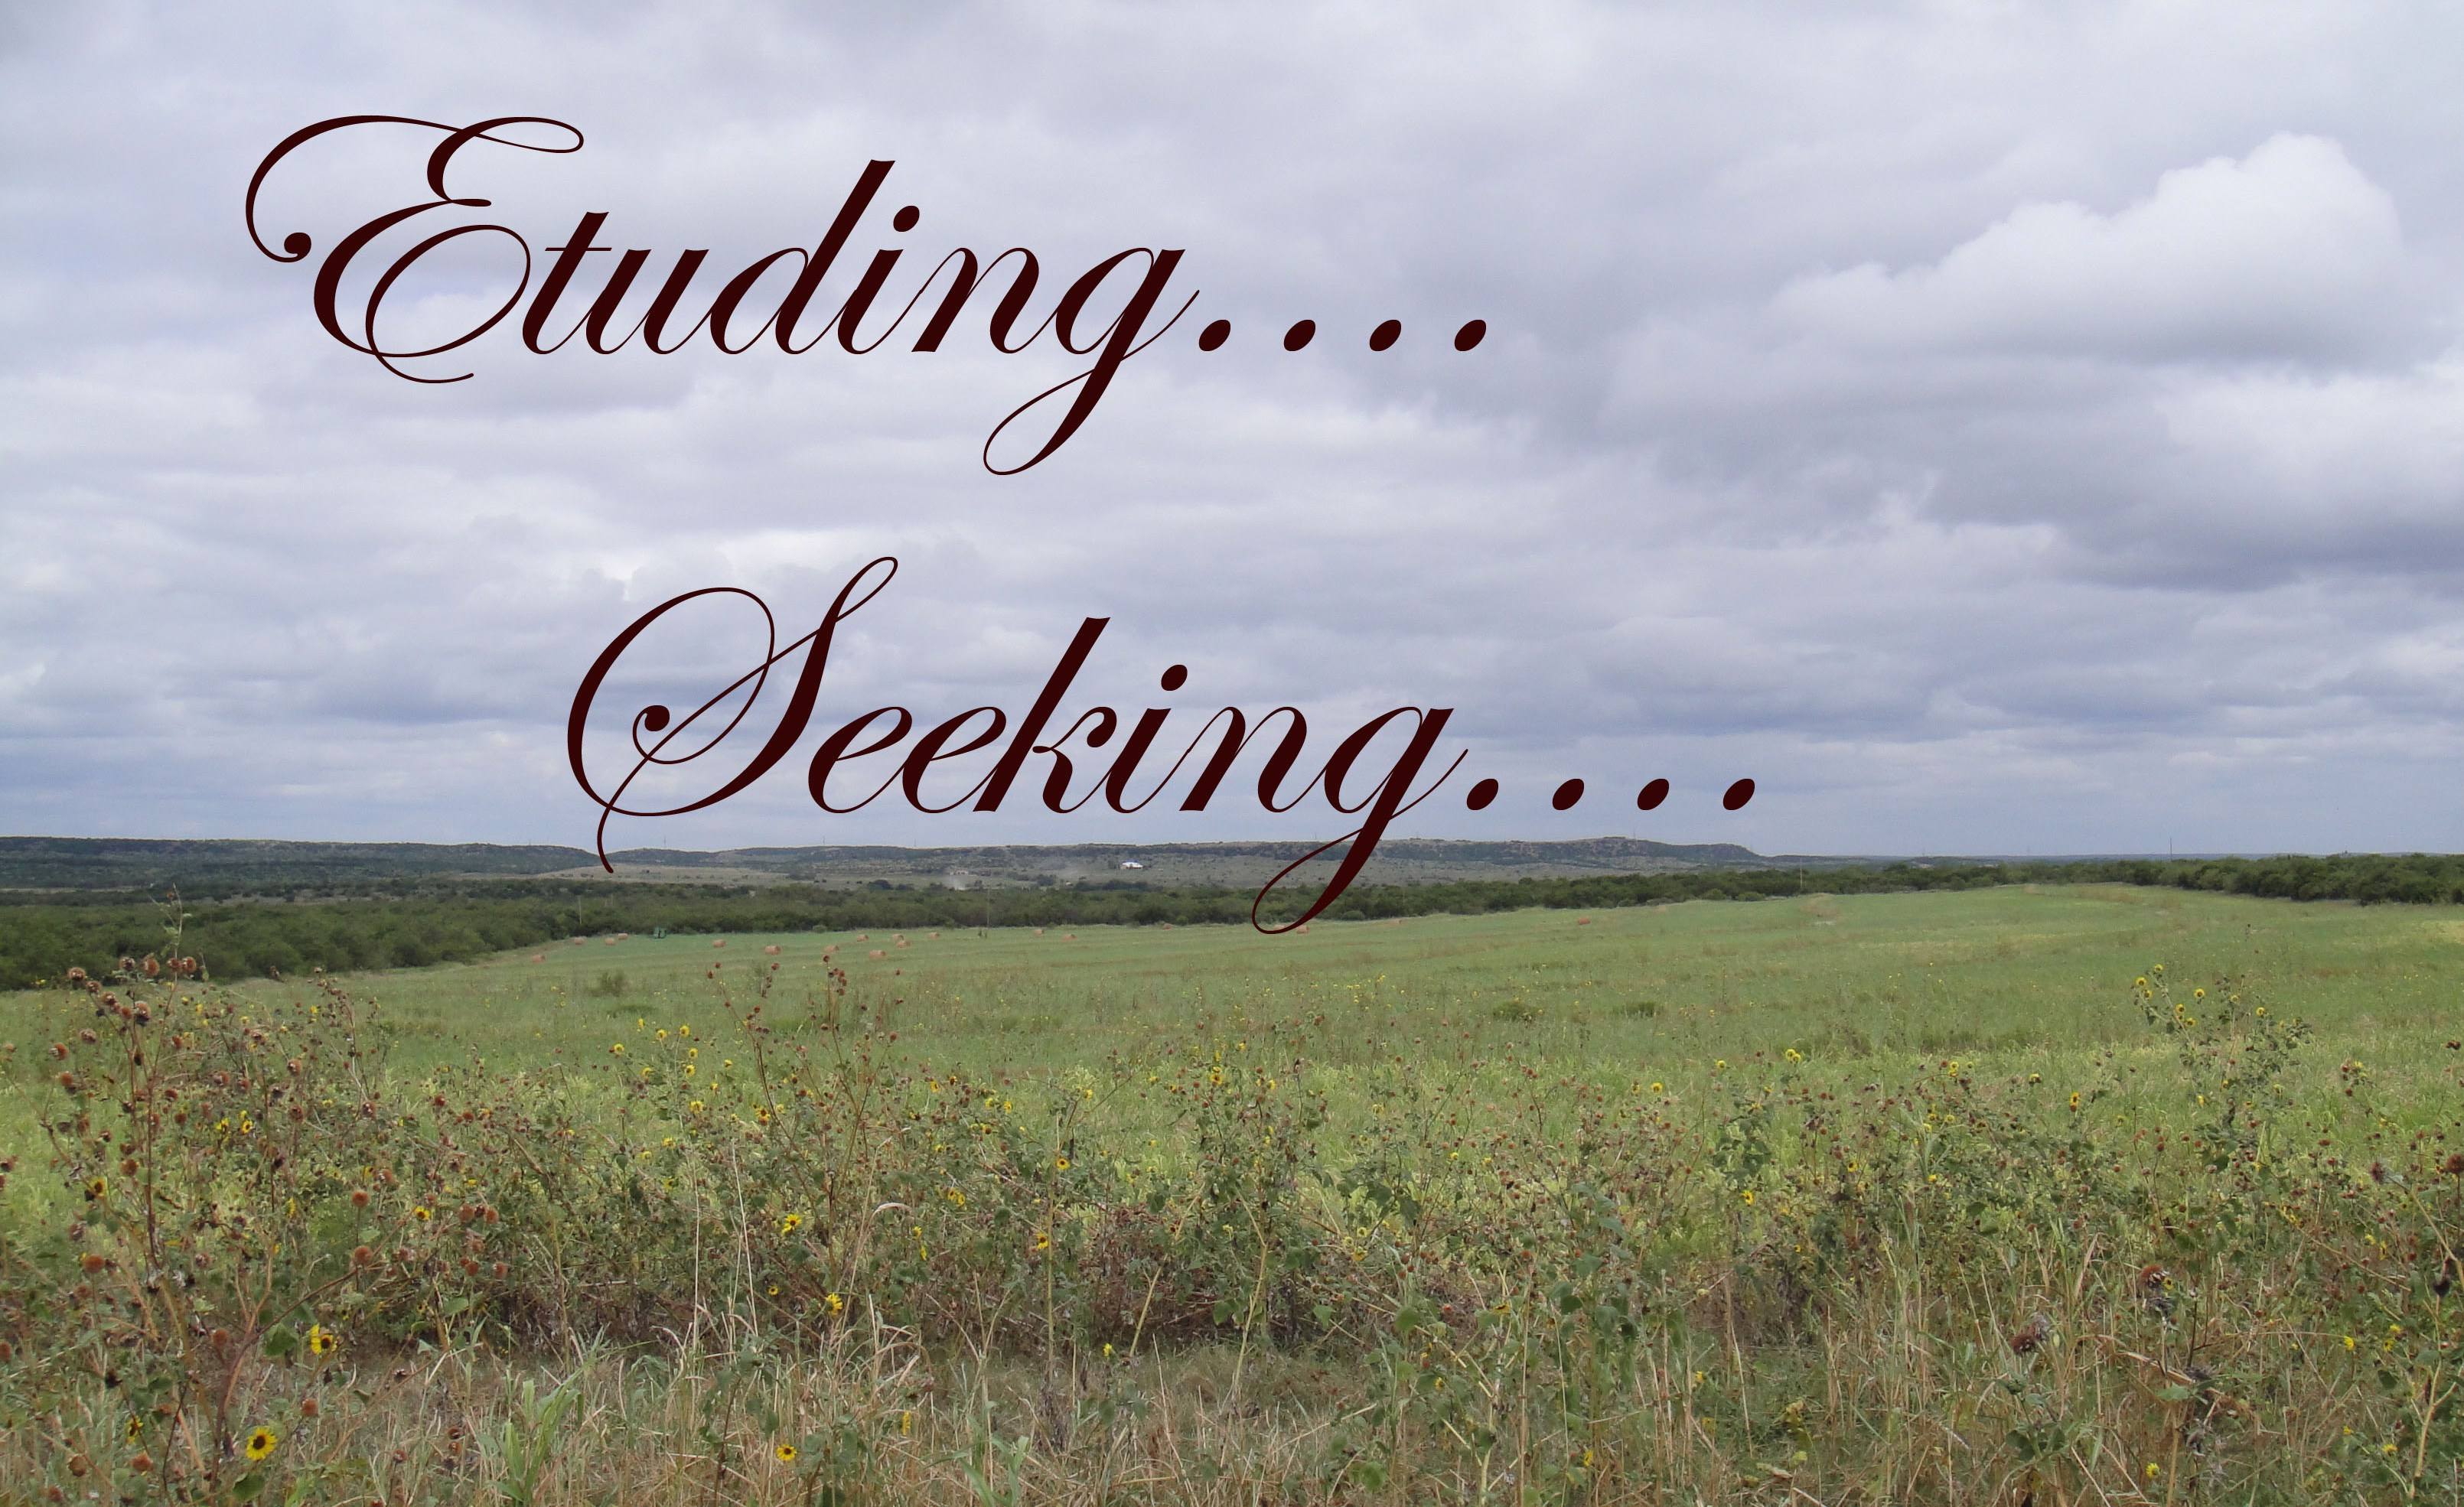 Etuding. Seeking.